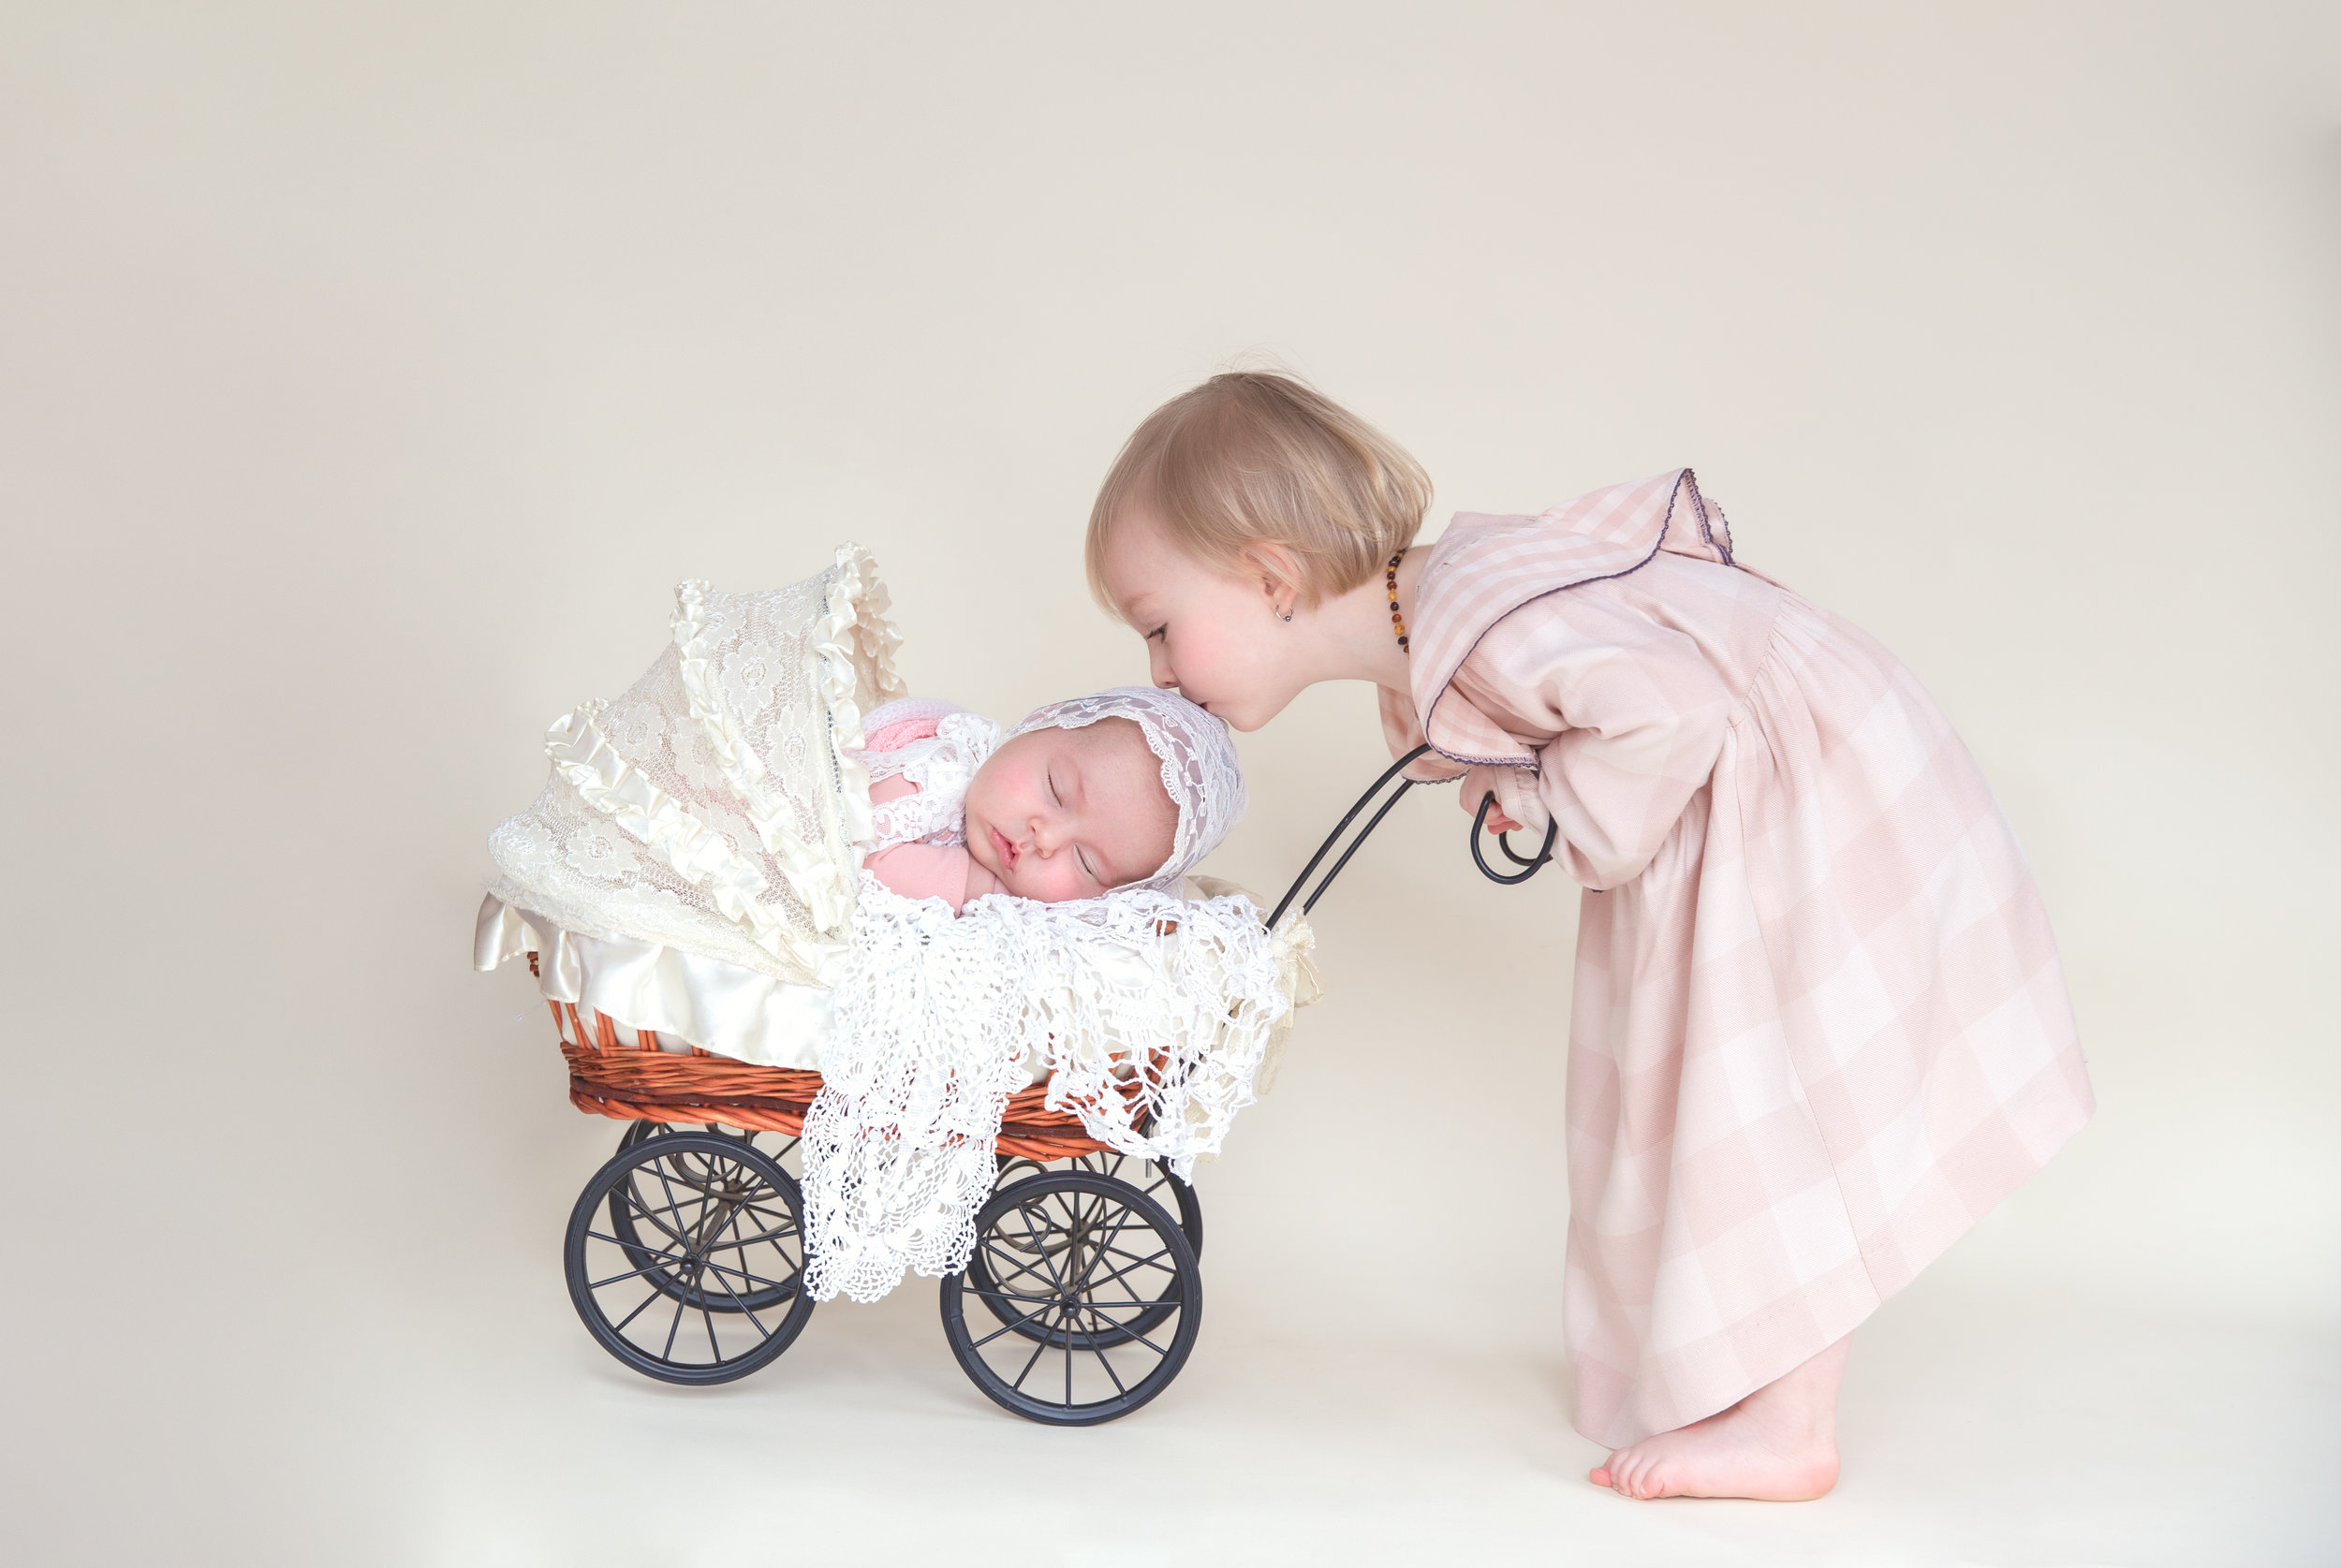 http://babyphotoawards.com/best-photography-gallery/37#photo_4781. Baby Photo Award winning picture of a newborn baby girl in a stroller and her sister kissing her on a head.